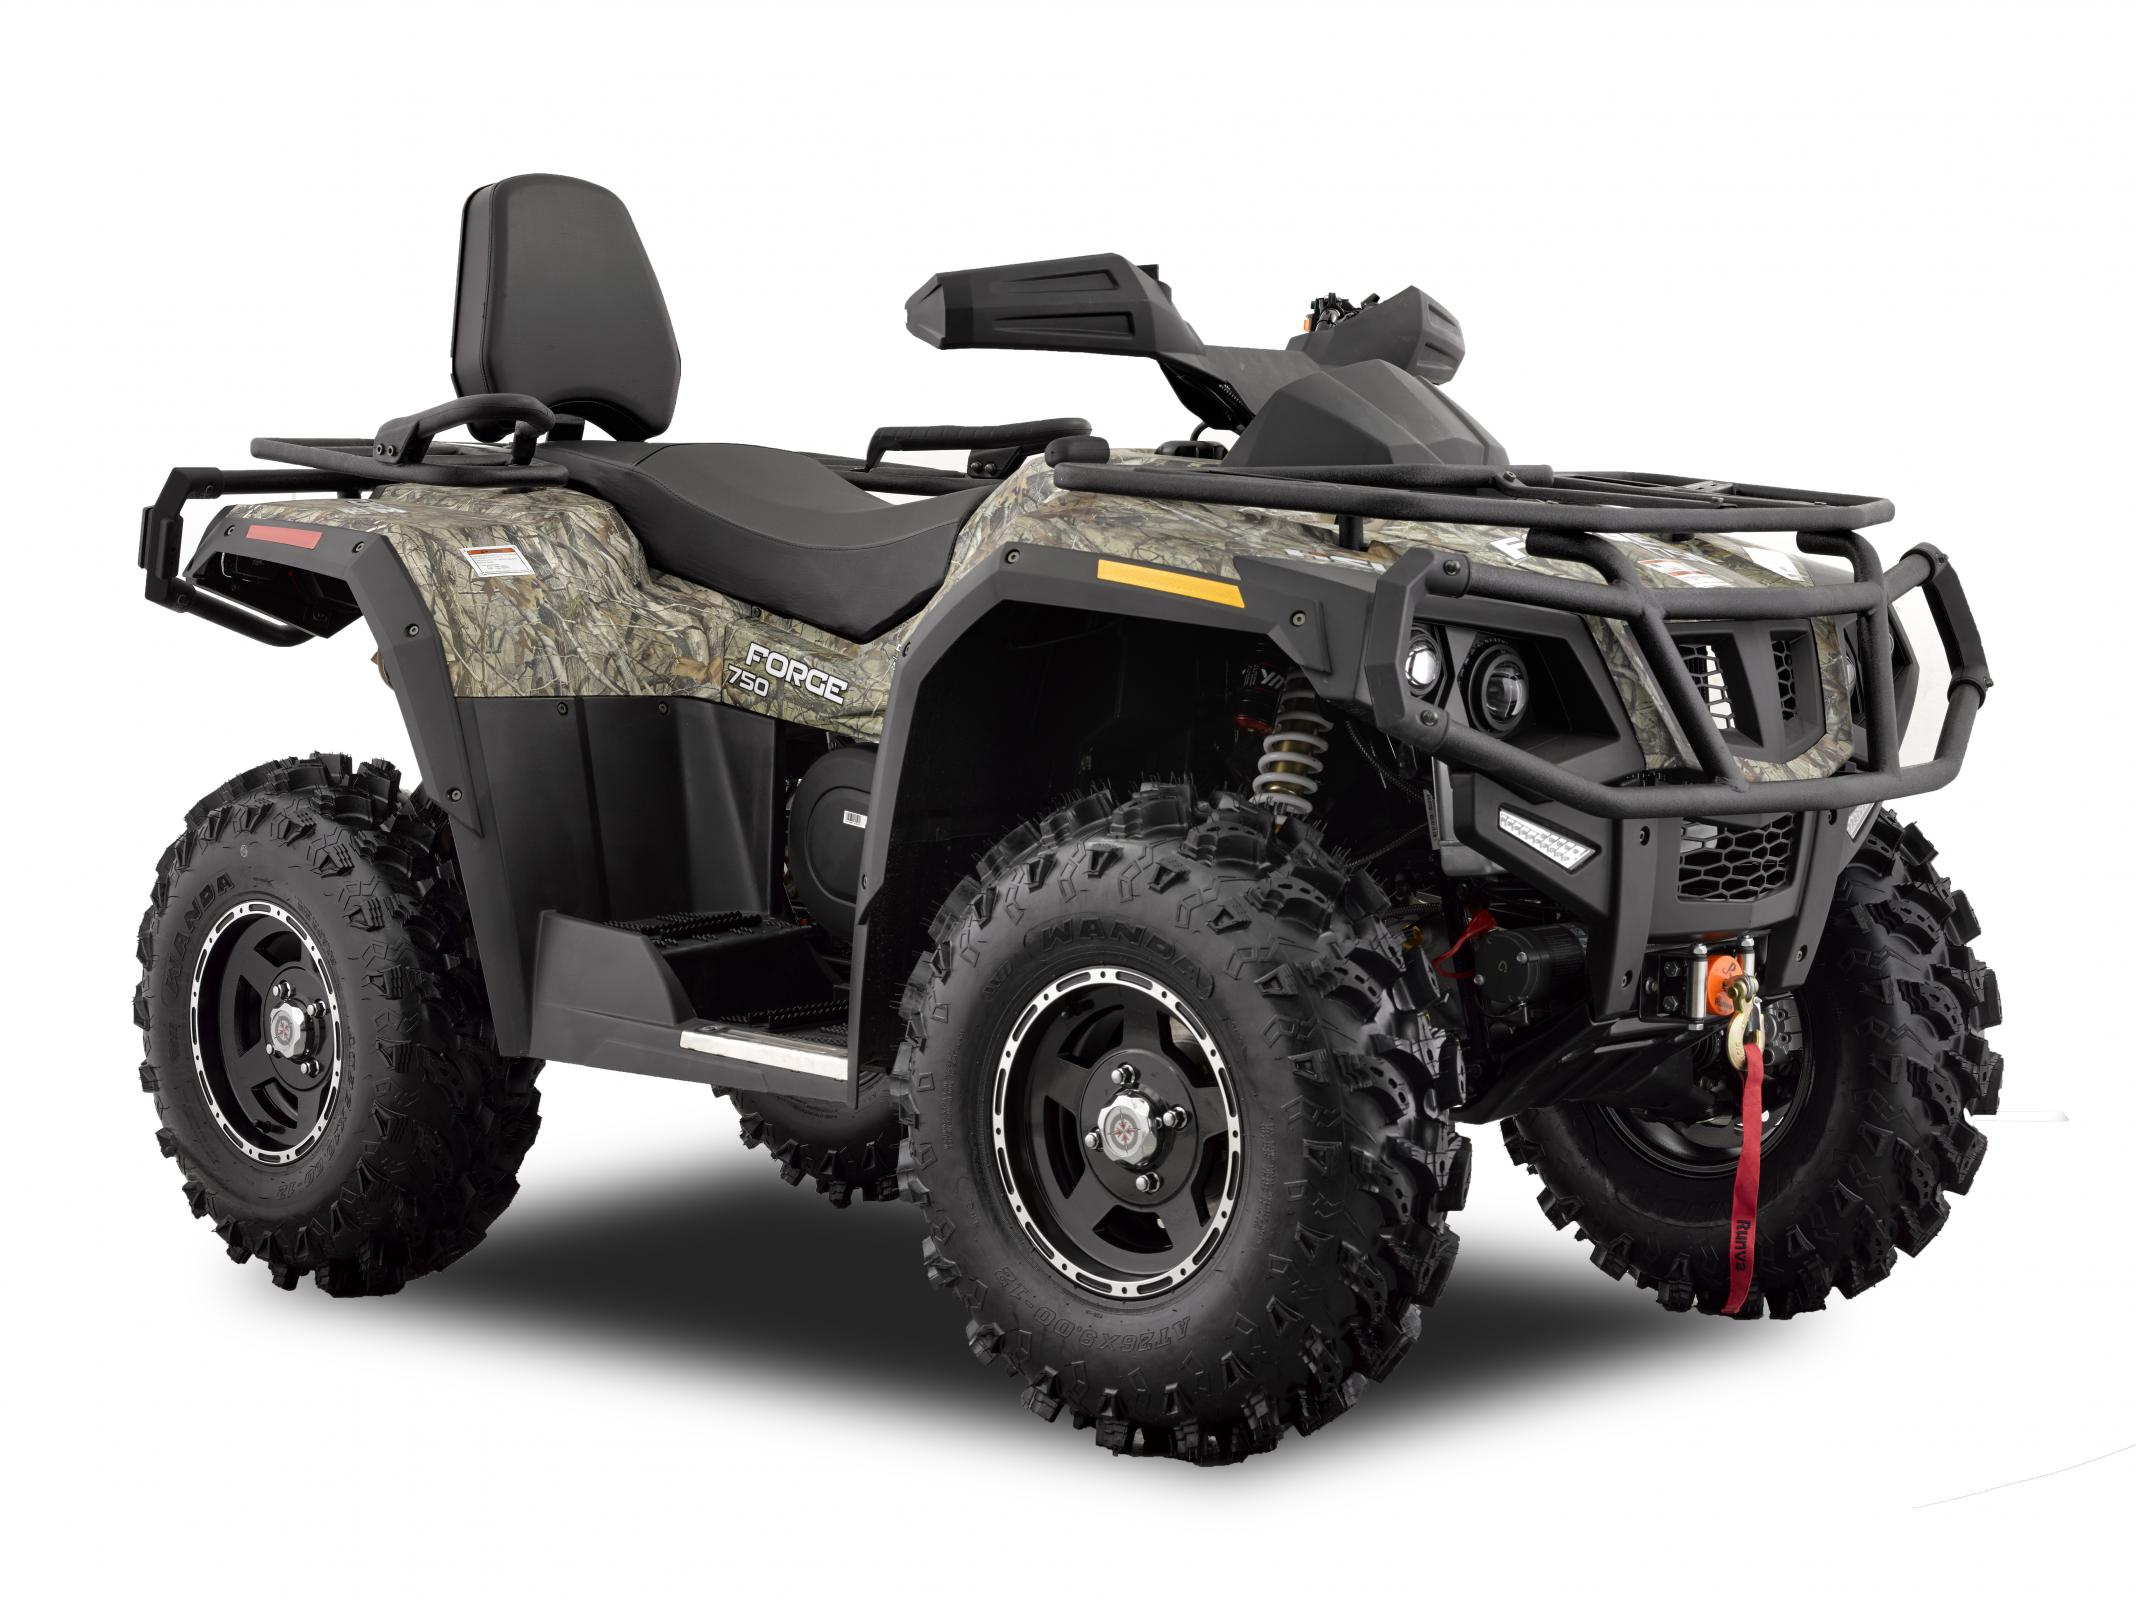 Polaris atv parts 15